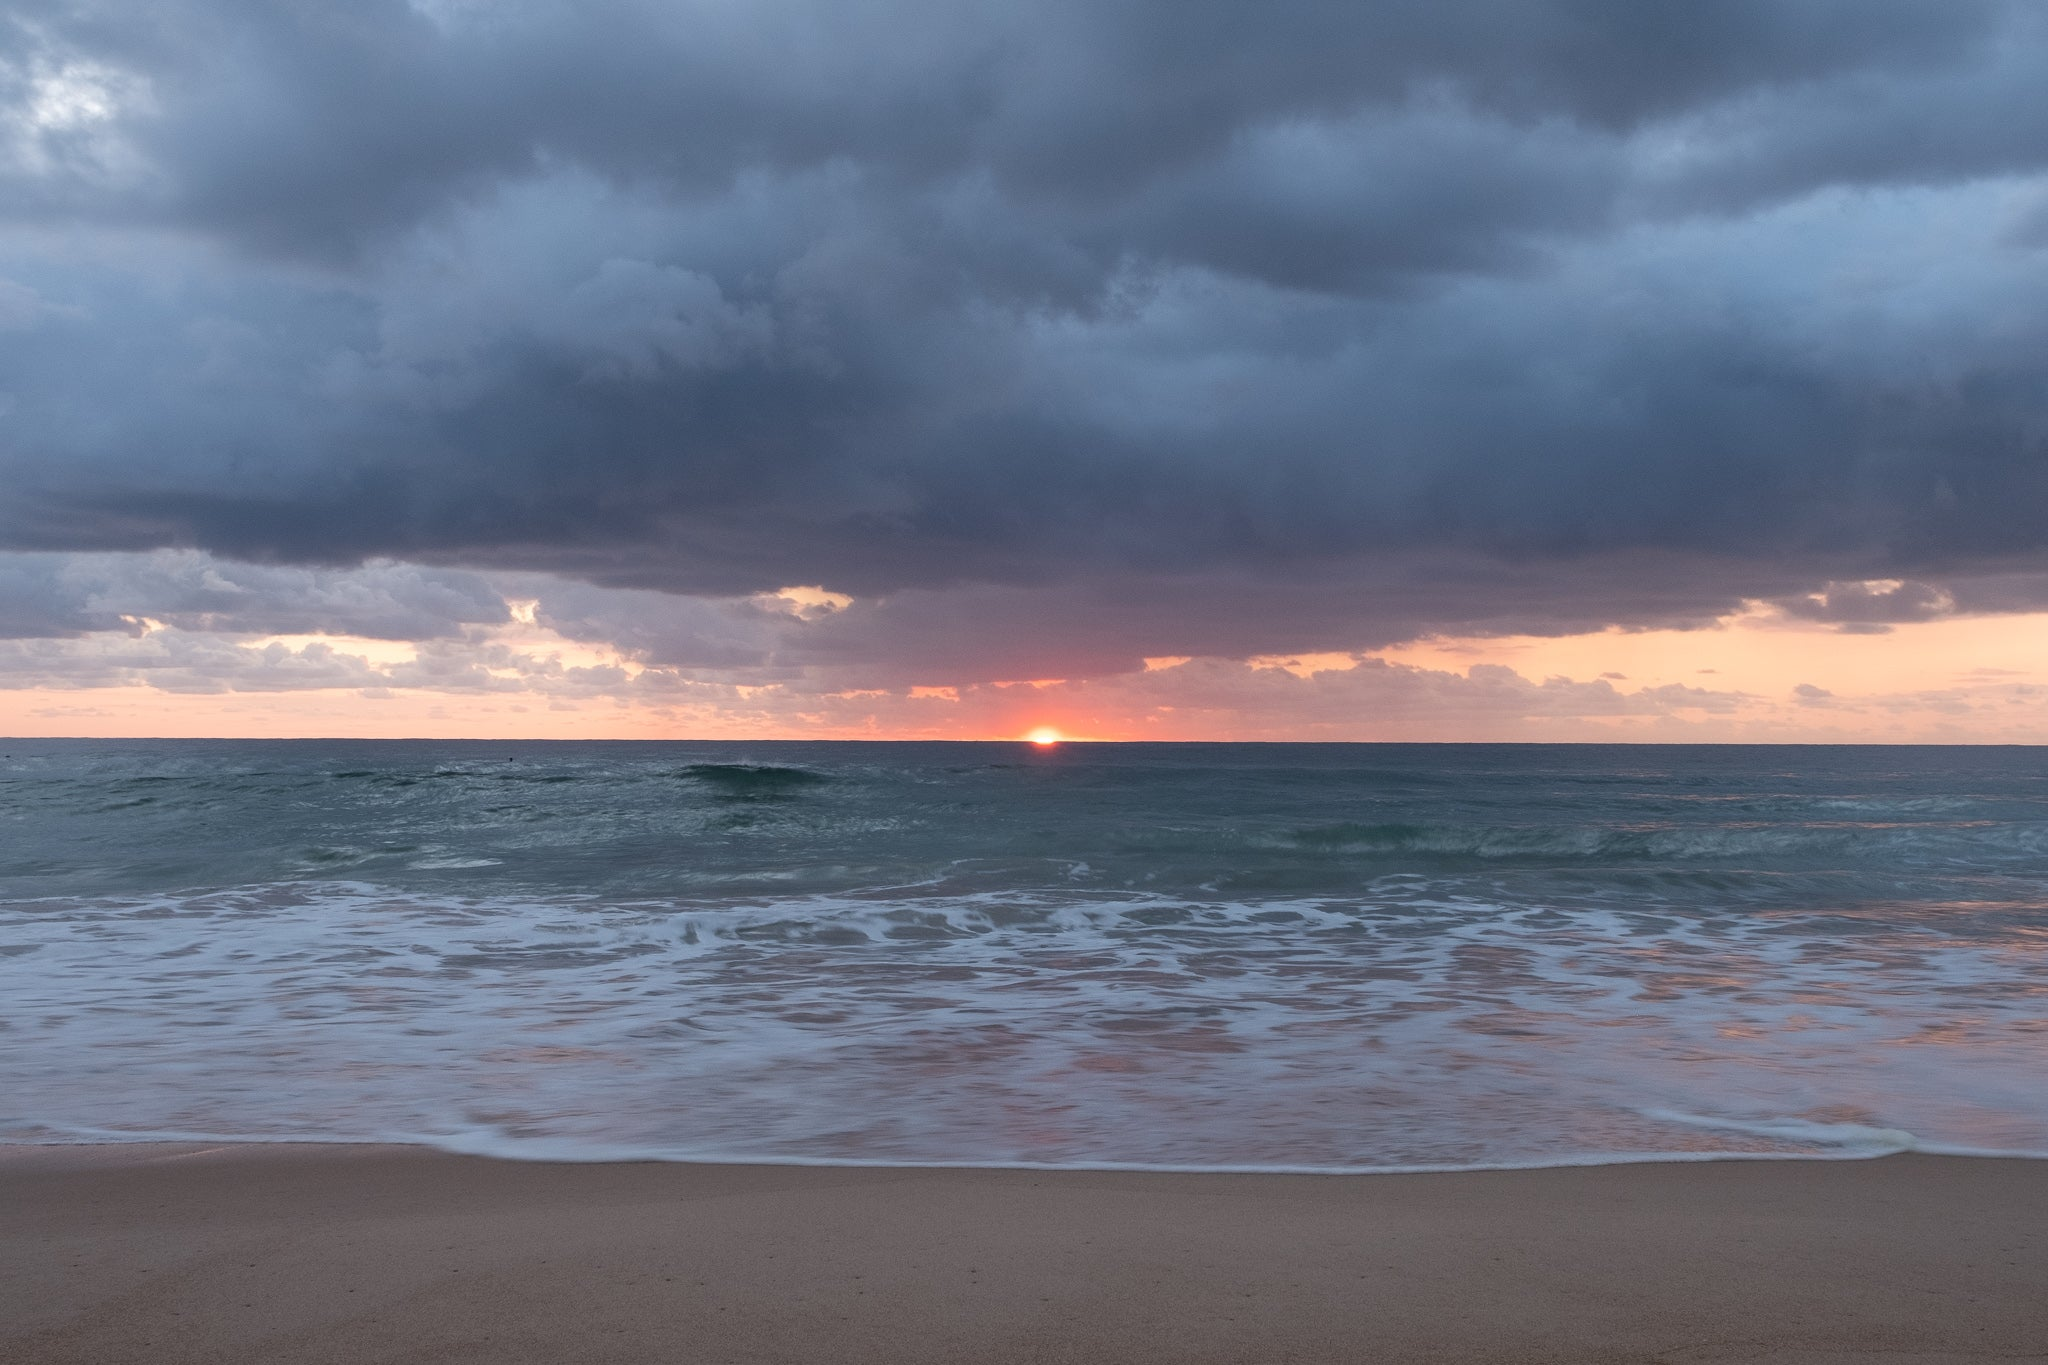 Sunrise photo from the 26th September 2019 at Manly Beach in Sydney